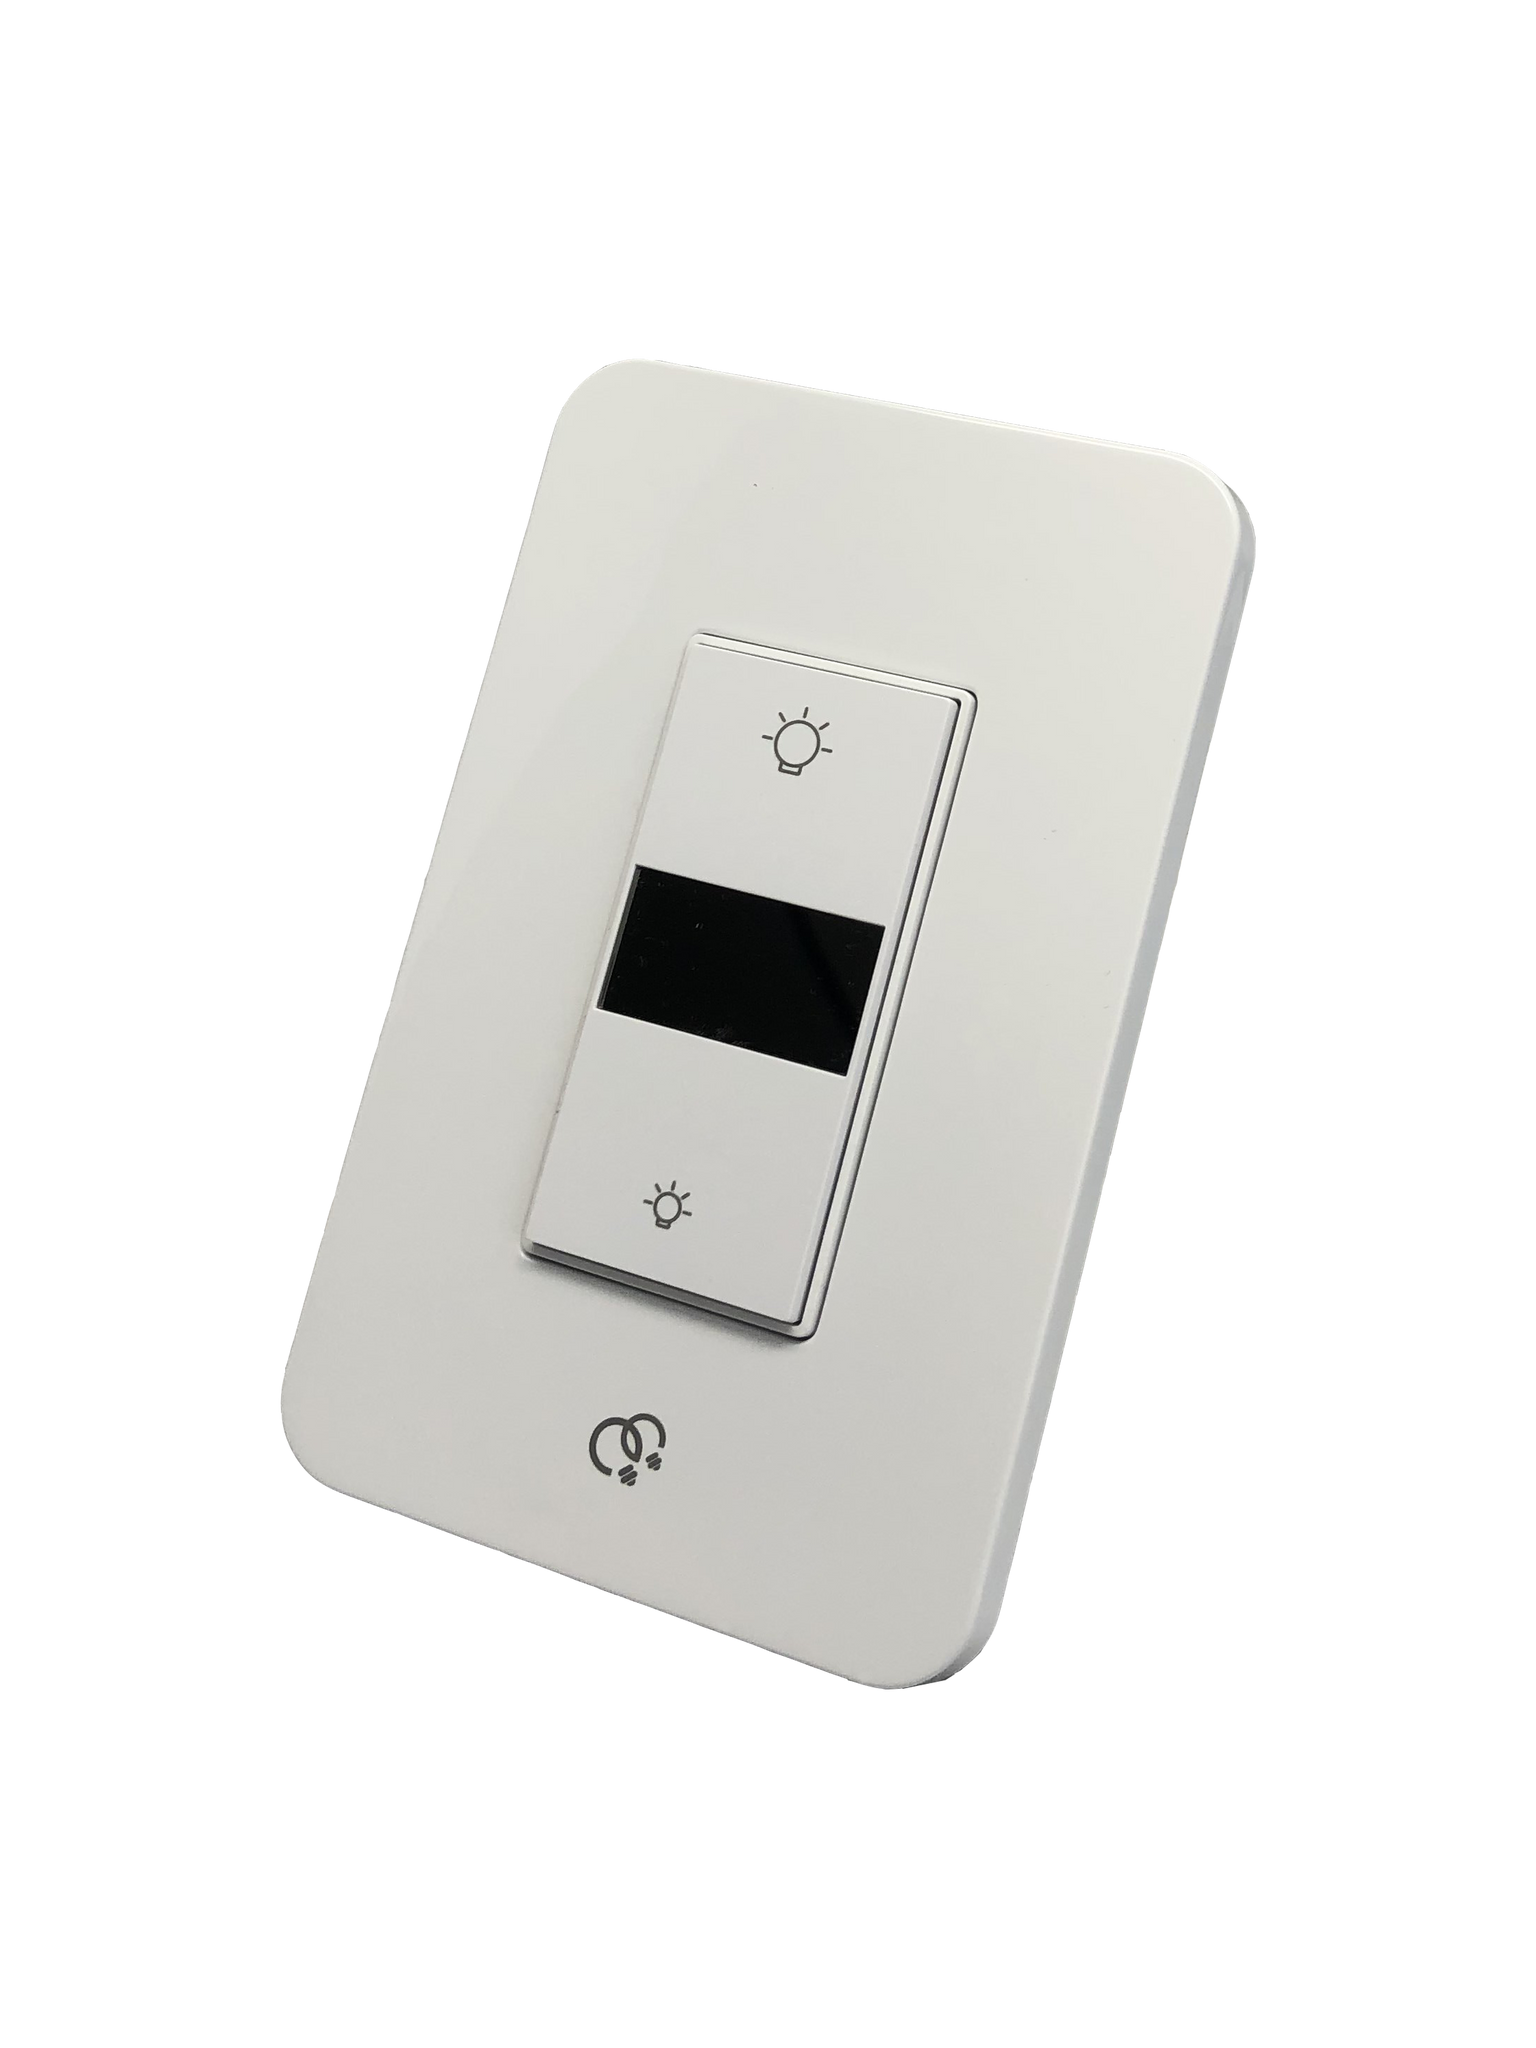 Smart Wi-fi Dimmer Switch with Display